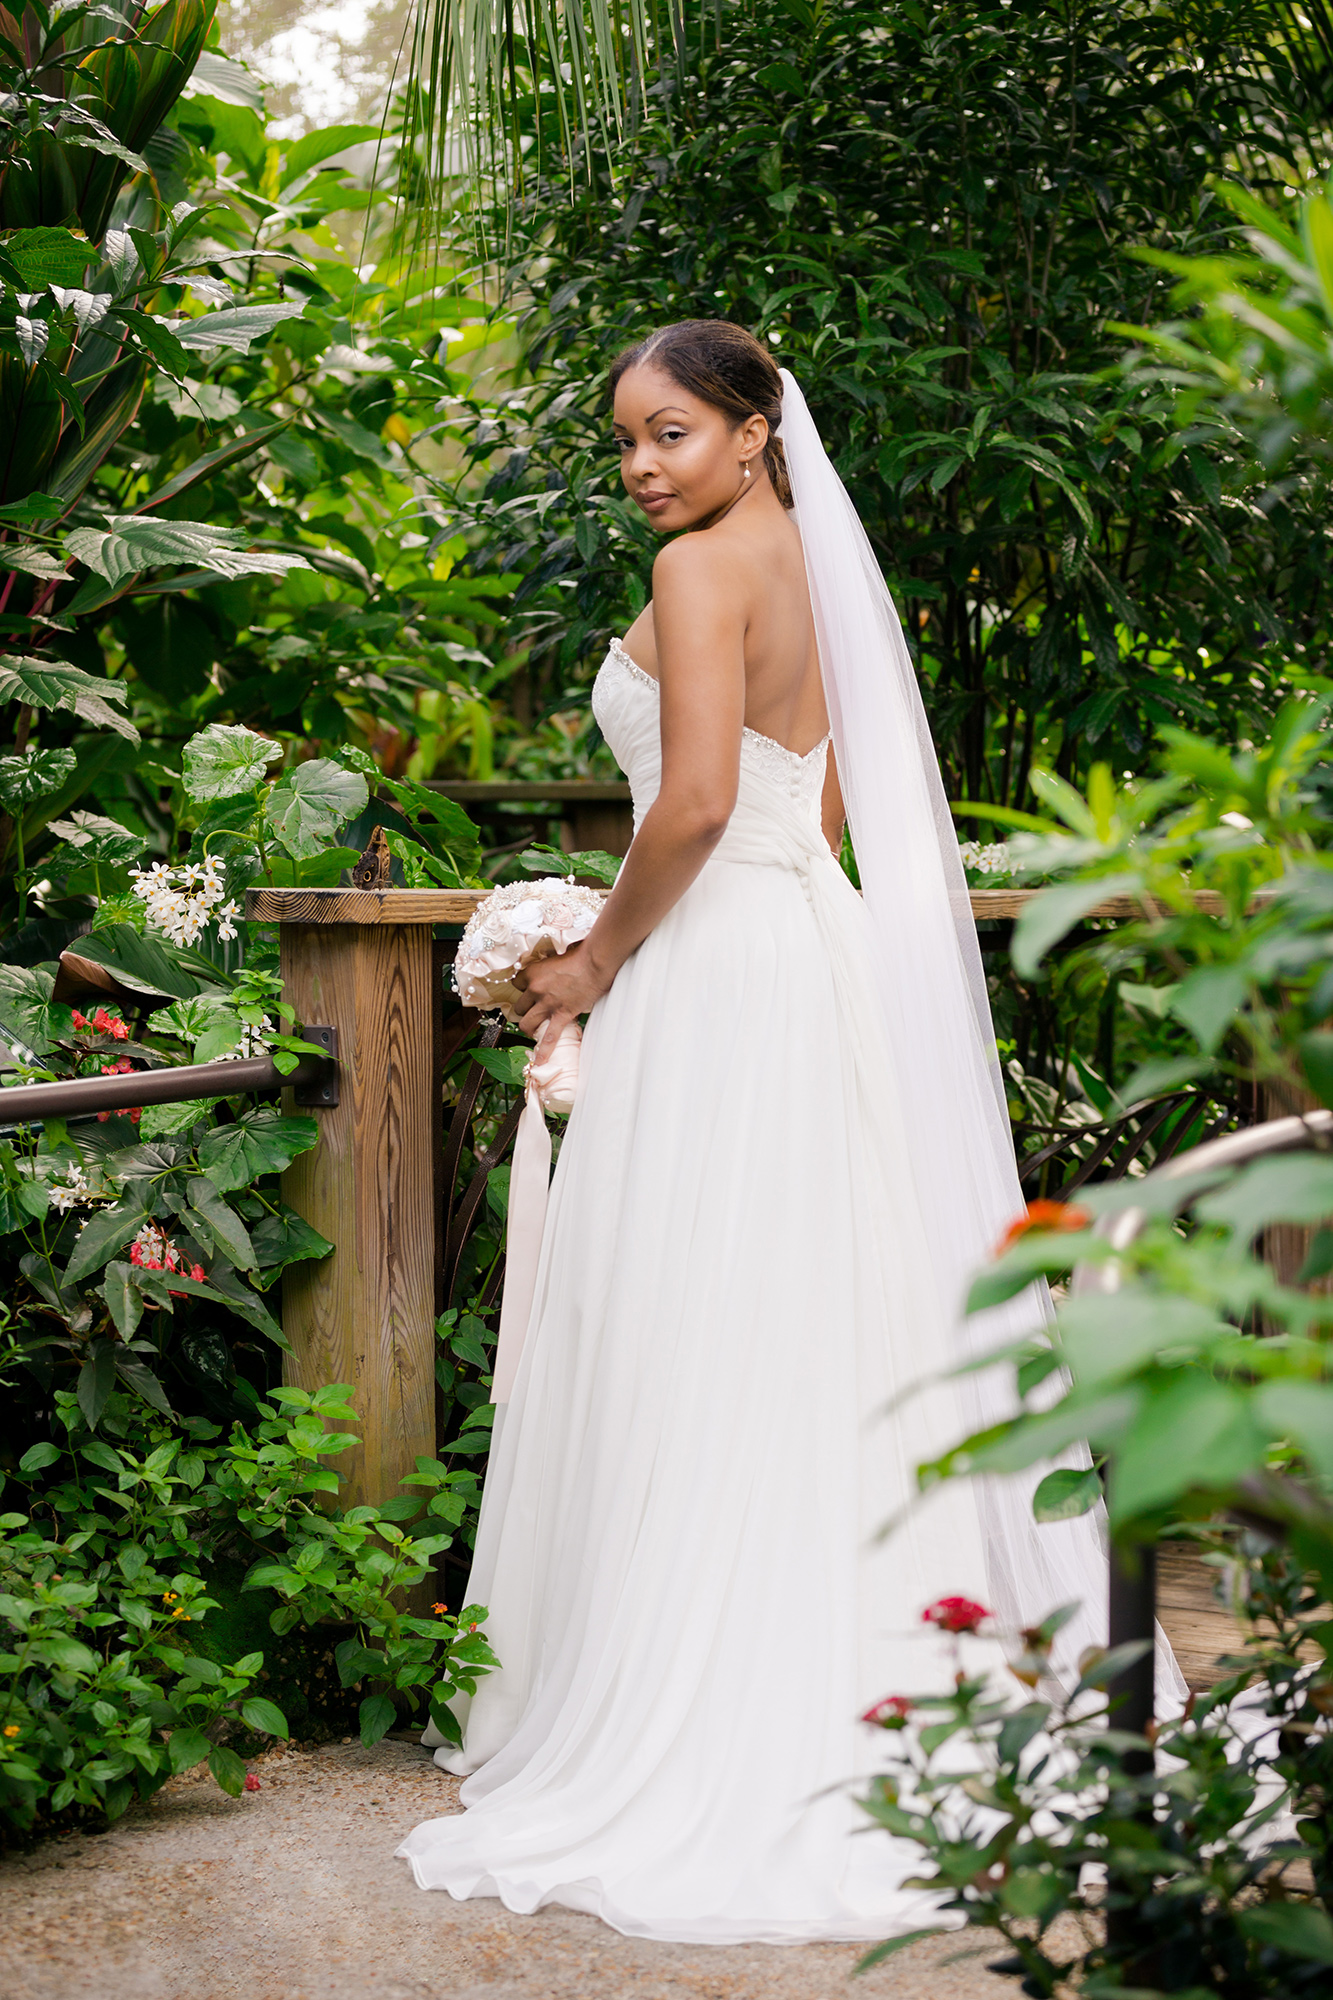 Wedding Dress Photo Shoot In The Erfly Rainforest By Indigo Co Photography